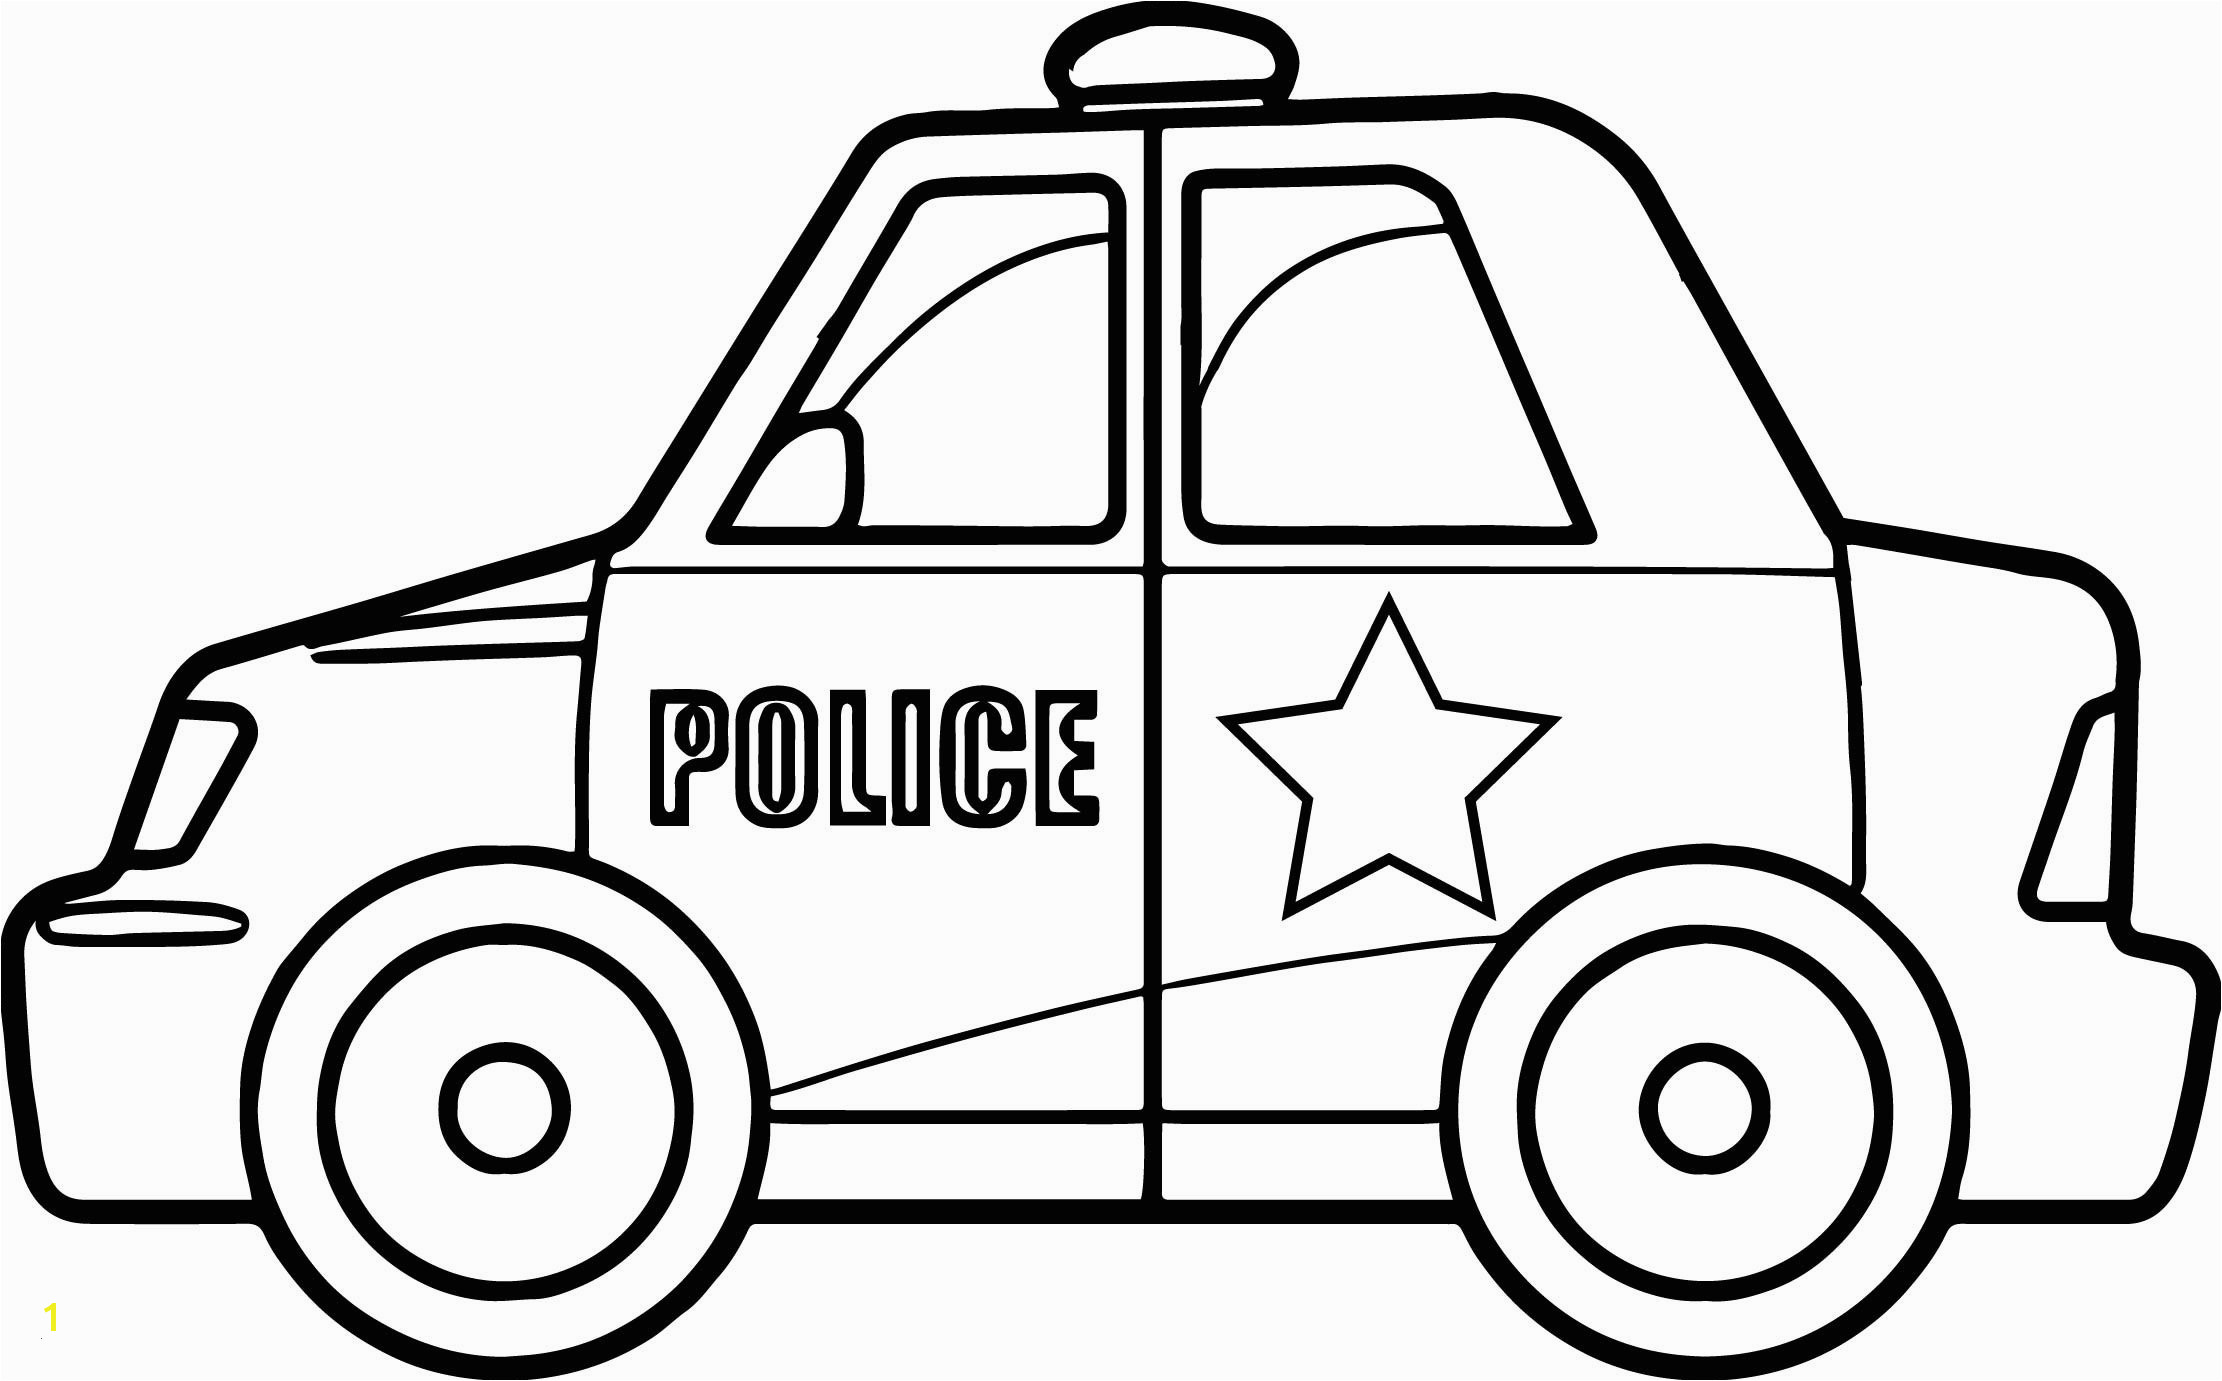 Swat Team Coloring Pages Police Car Coloring Pages Lovable Police Car Coloring Pages Line